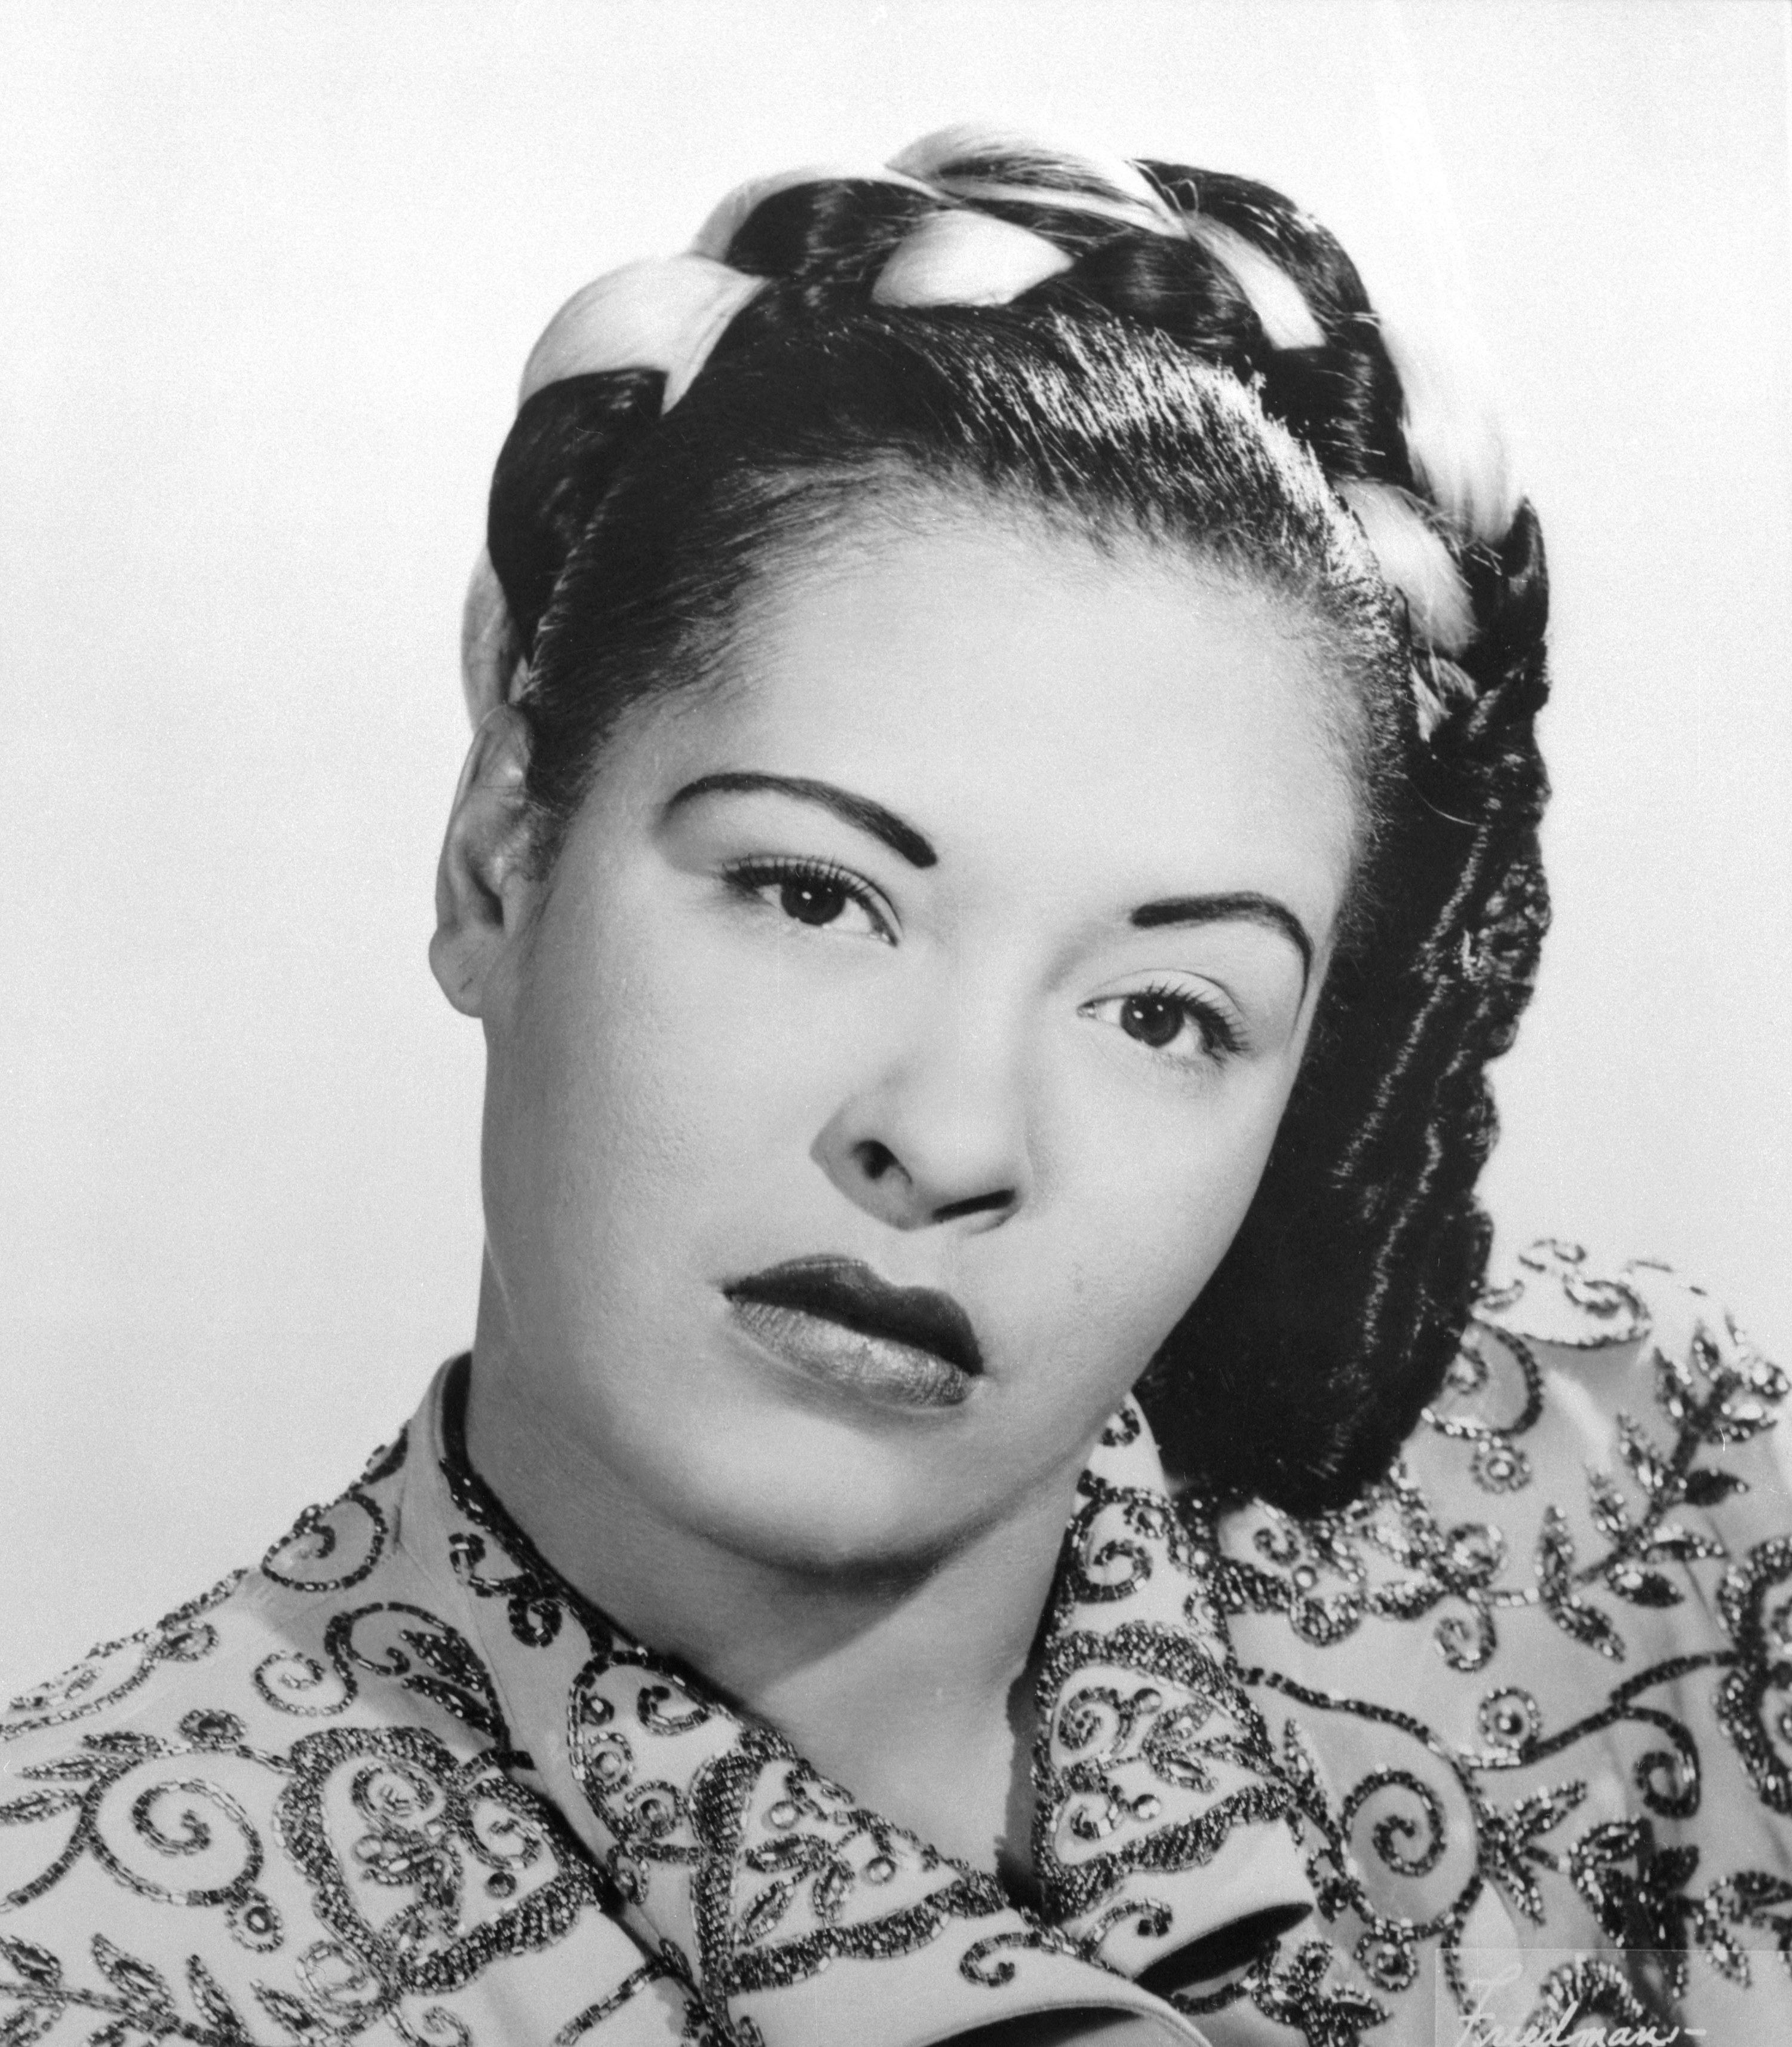 Portrait of Billie Holiday with questioning look and her head tilted